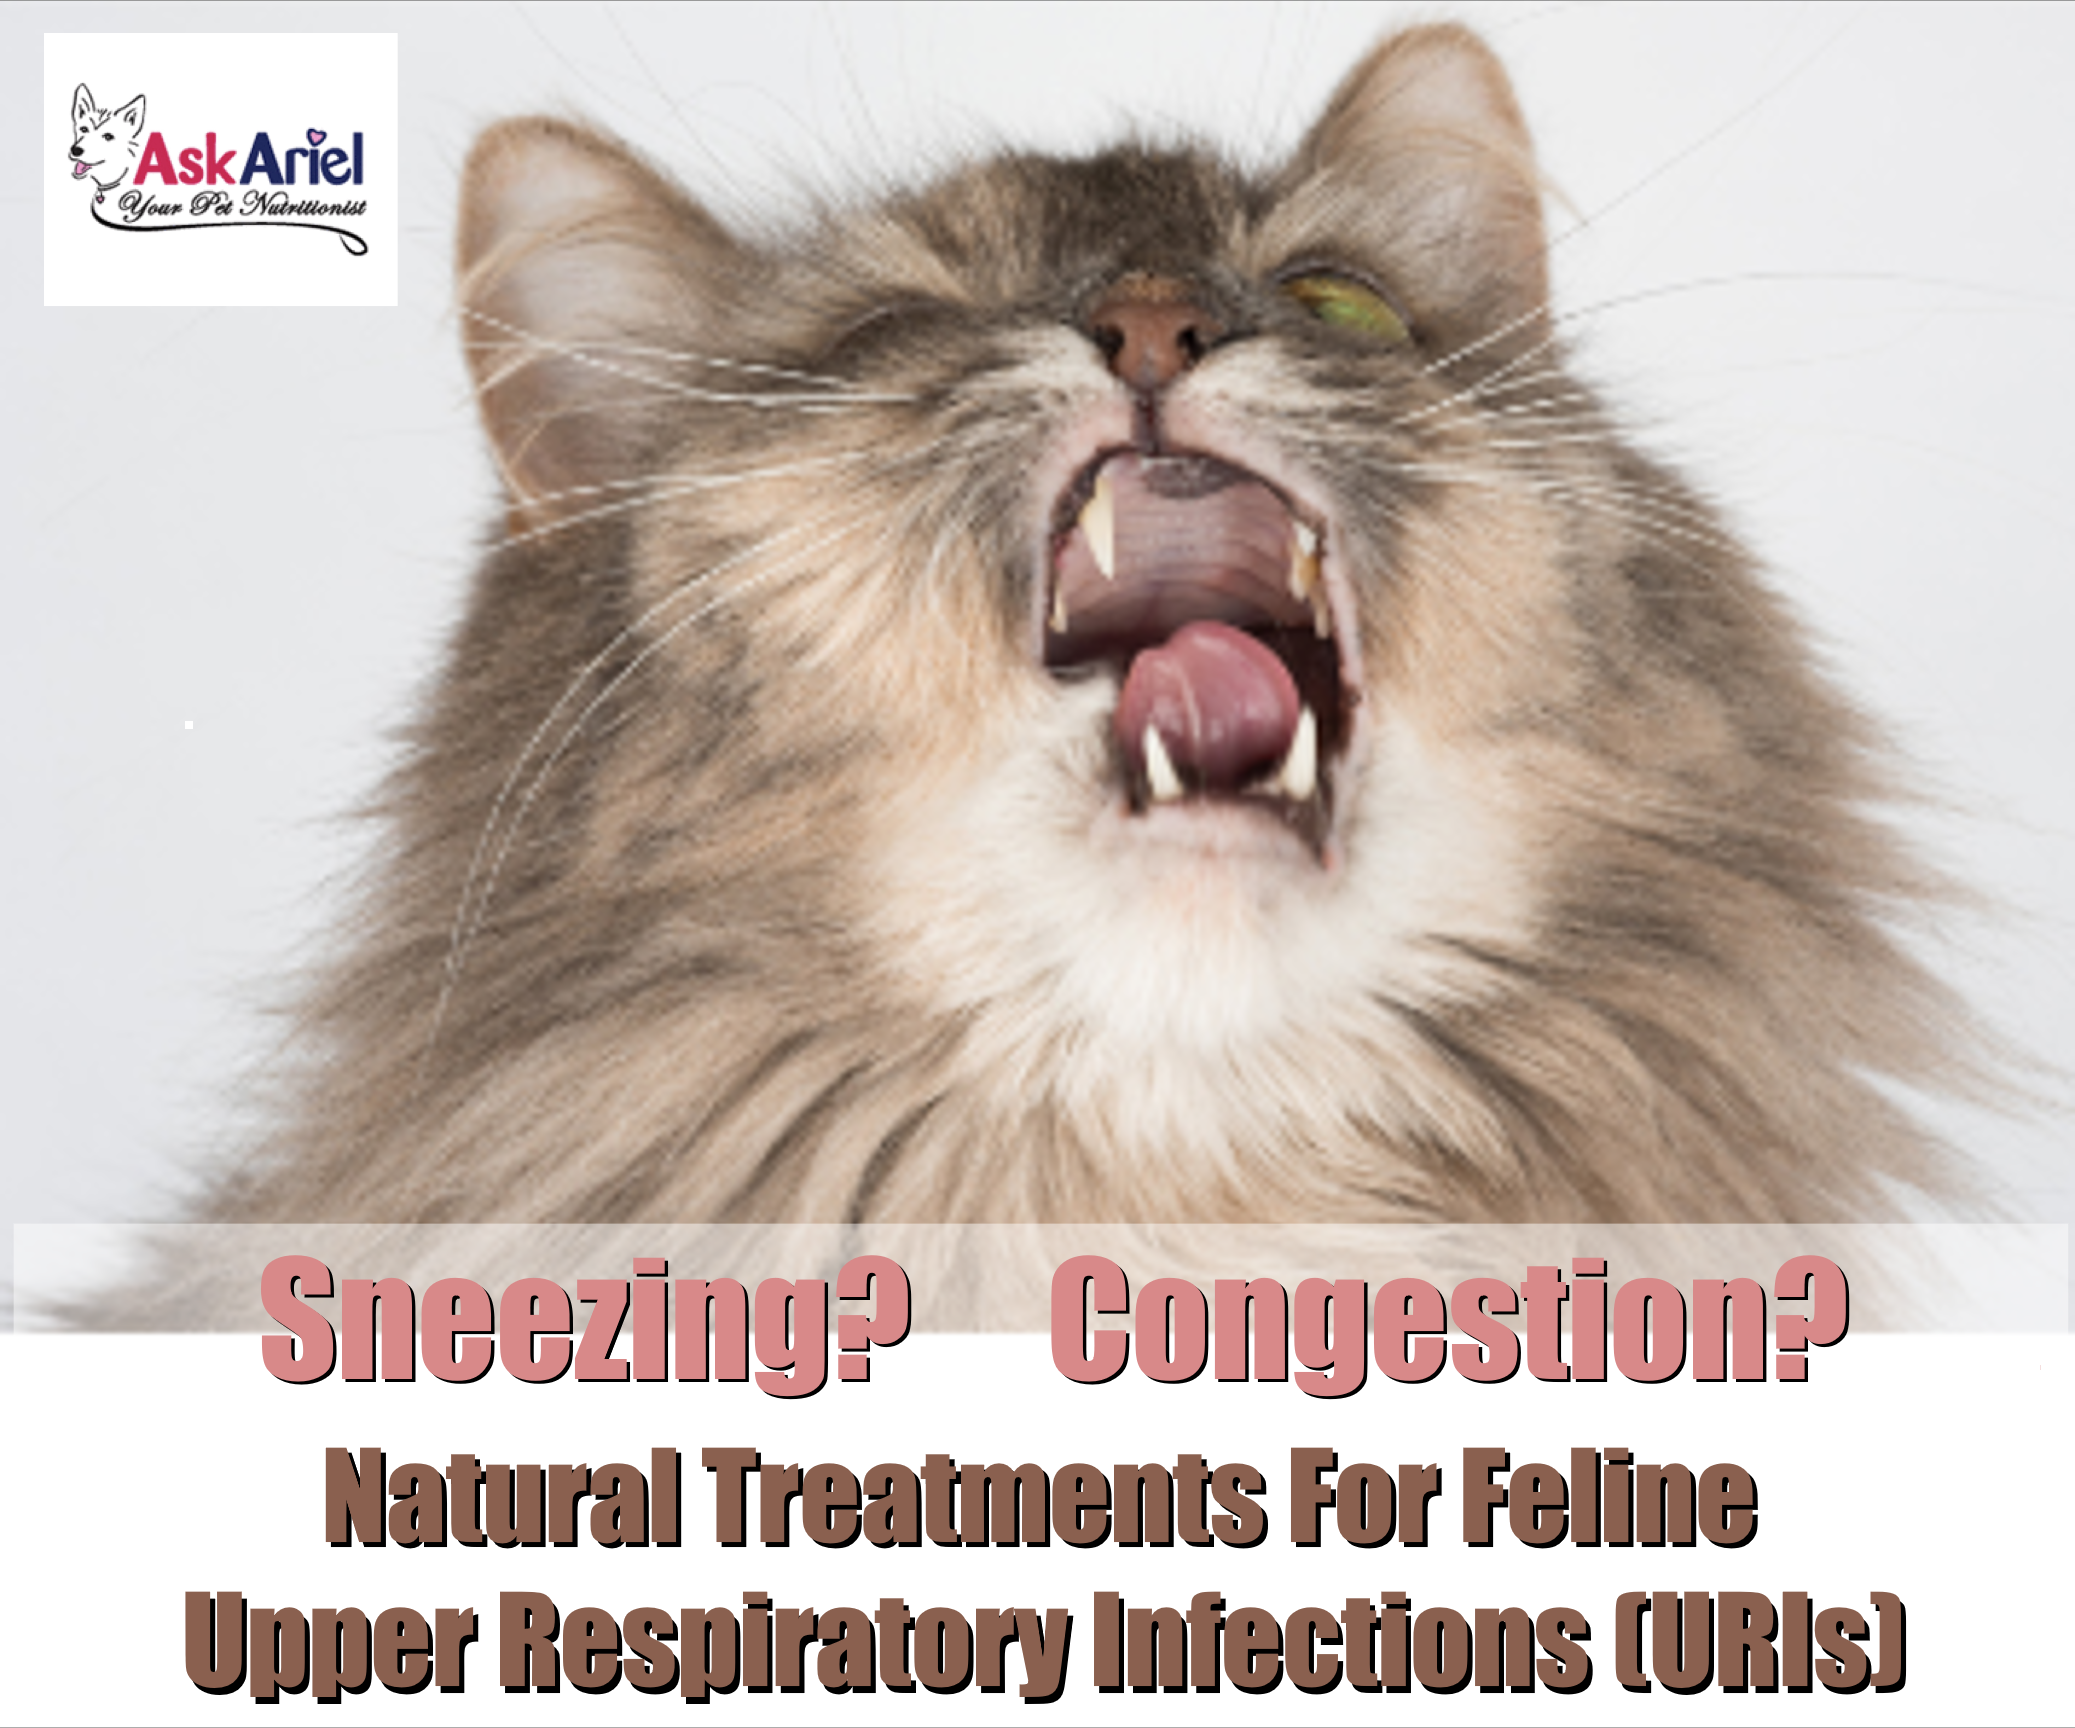 Can cats catch a cold? A feline upper respiratory